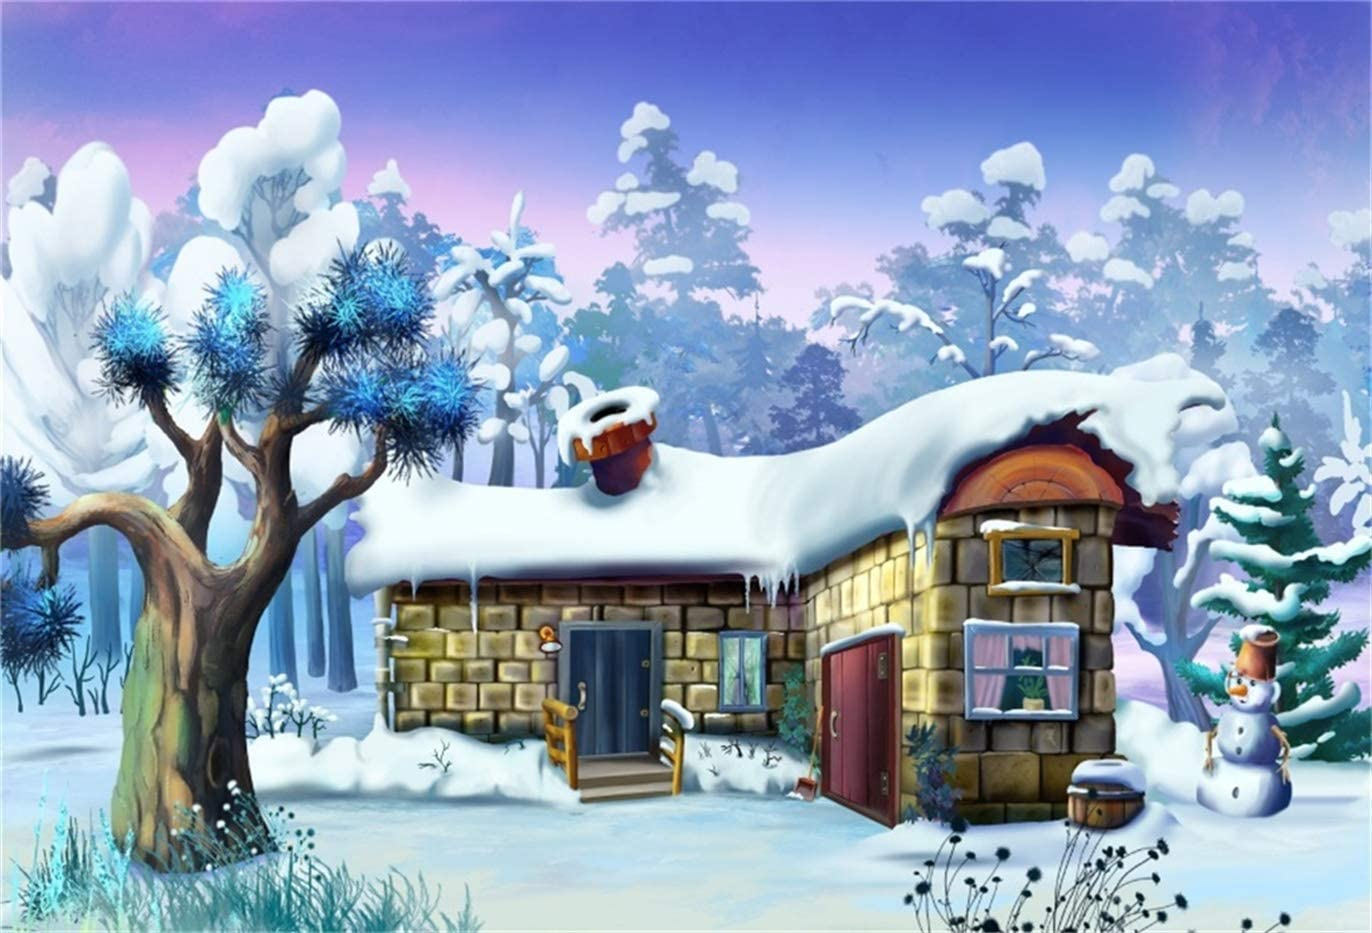 GoEoo 7x5ft Winter Forest Cabin with Chimney Background Snow Covered Tree Snowman Photography Backdrop Cartoon Woods House Snowfield Photo Studio Props Christmas Holiday Happy New Year Vinyl Banner